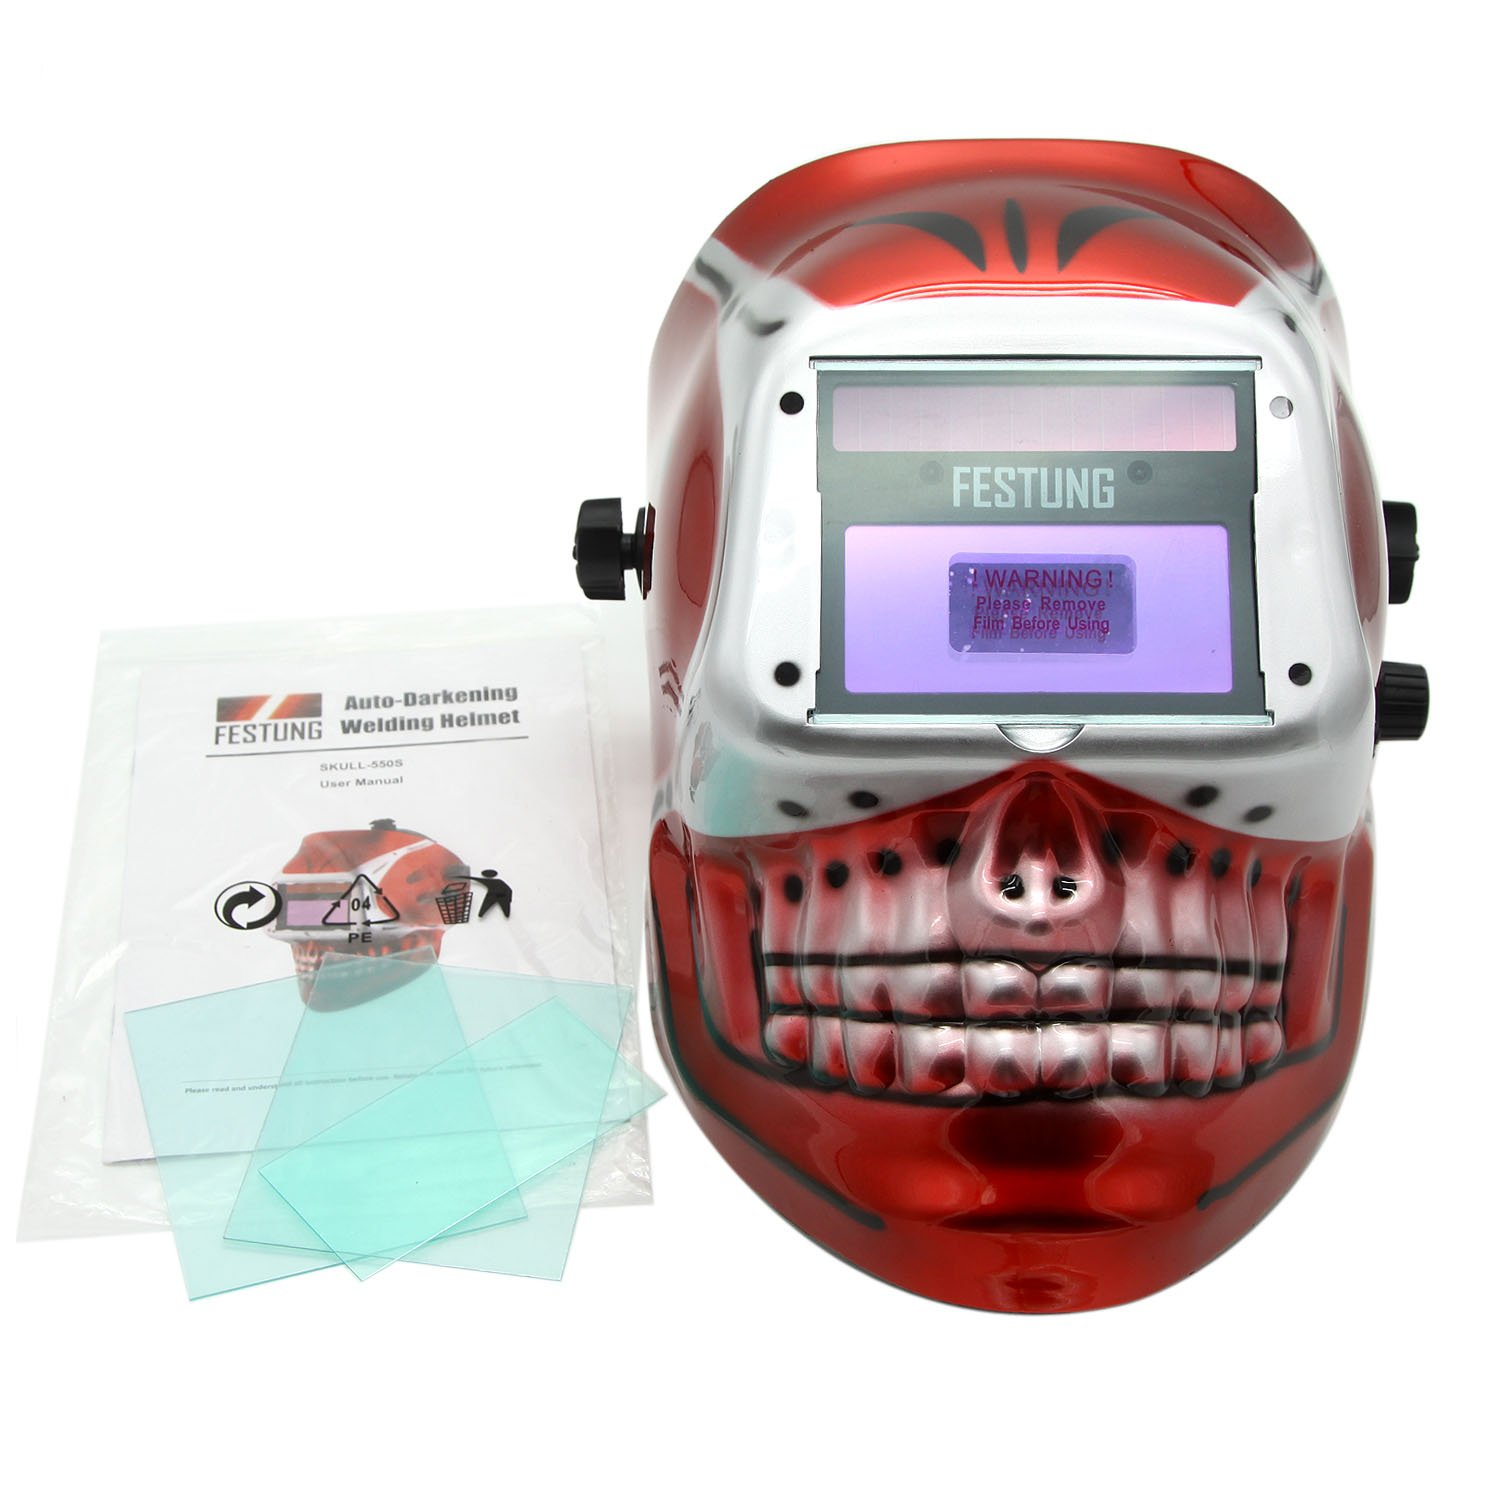 KOOLWOOM Solar Power Auto Darkening Welding Helmet SKULL designed with 2 Arc Sensors & Two Shade Ranges 5-8/9-13 with Grinding Feature Extra lens covers Good for TIG MIG MMA Plasma by KOOLWOOM